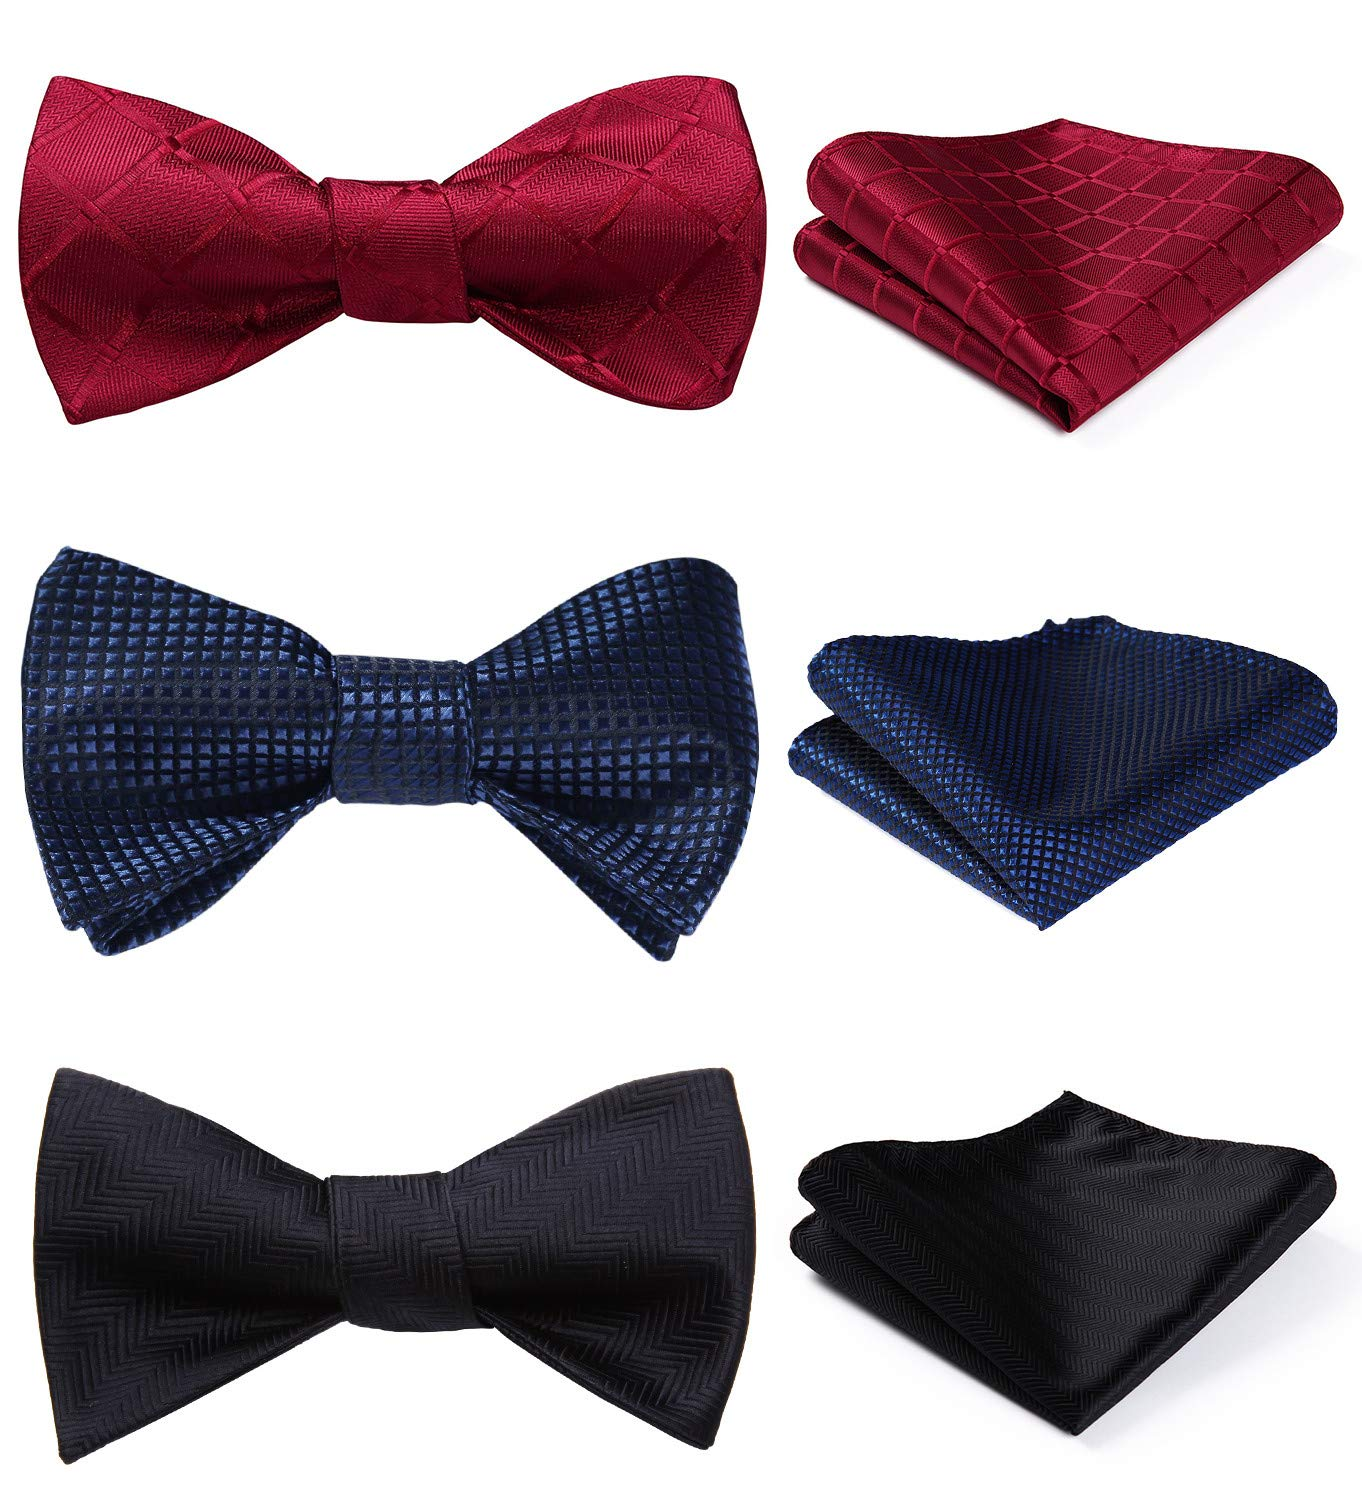 HISDERN 3 Packs Classic Solid Color Self Tie Bow tie & Pocket Square Sets Good Gift for Men by HISDERN